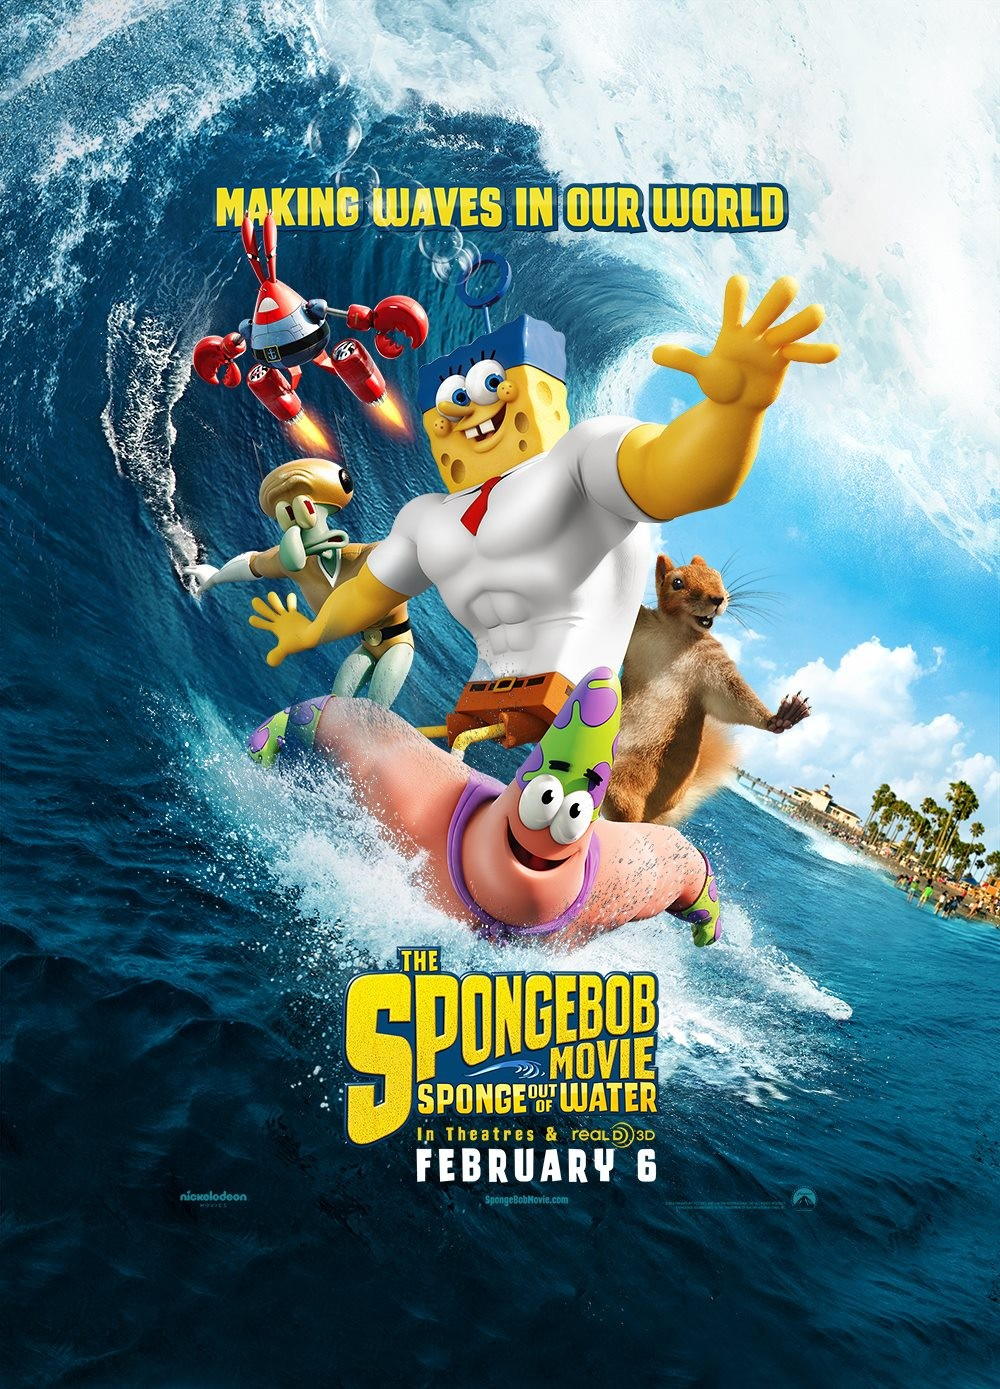 The SpongeBob Movie Sponge Out of Water-PROMO XLG-31OUTUBRO2014-01